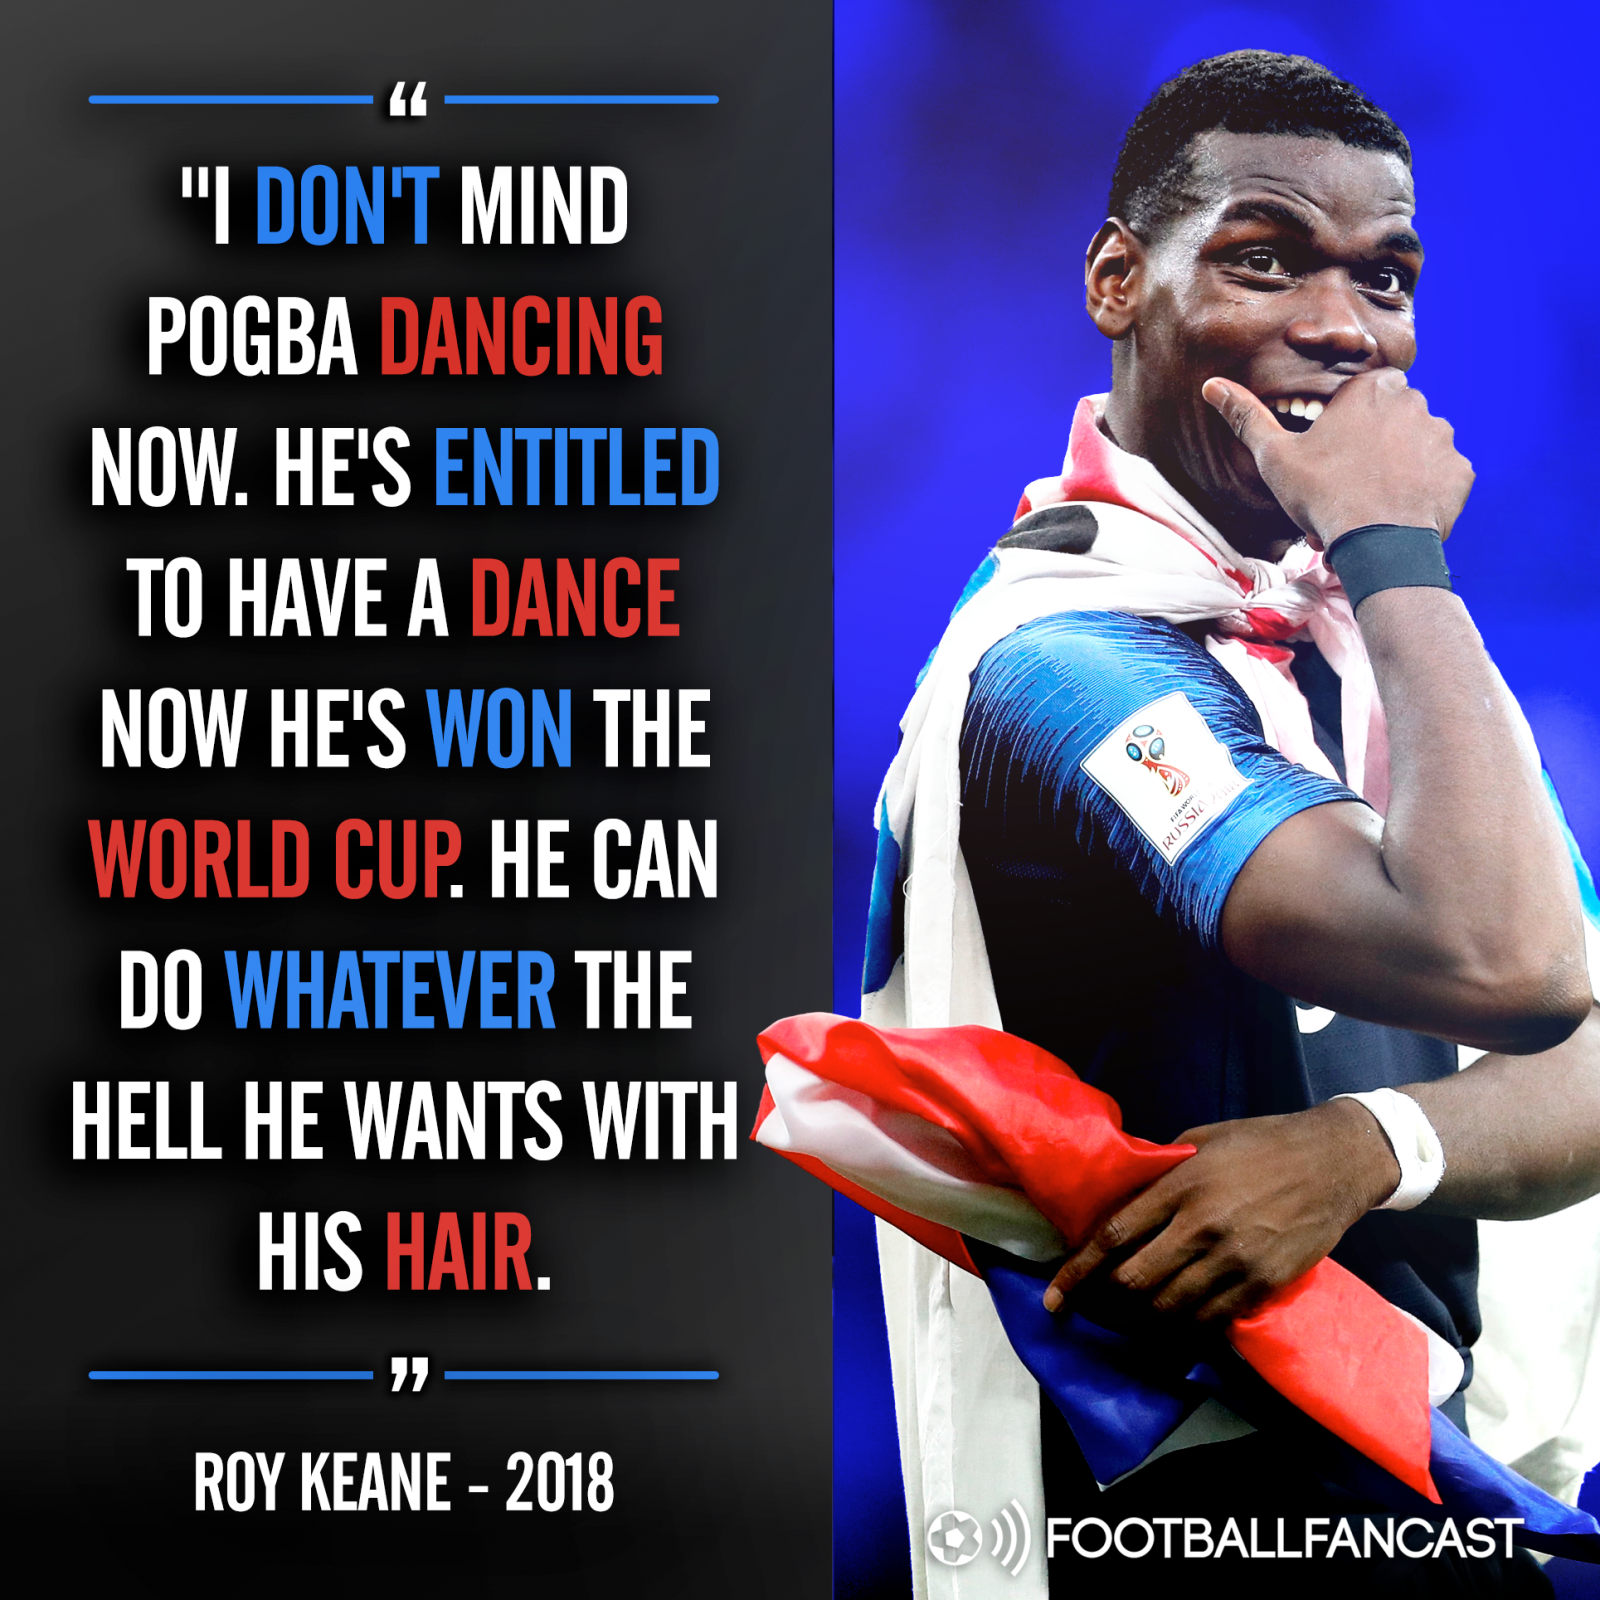 Roy Keane on Paul Pogba after lifting the World Cup